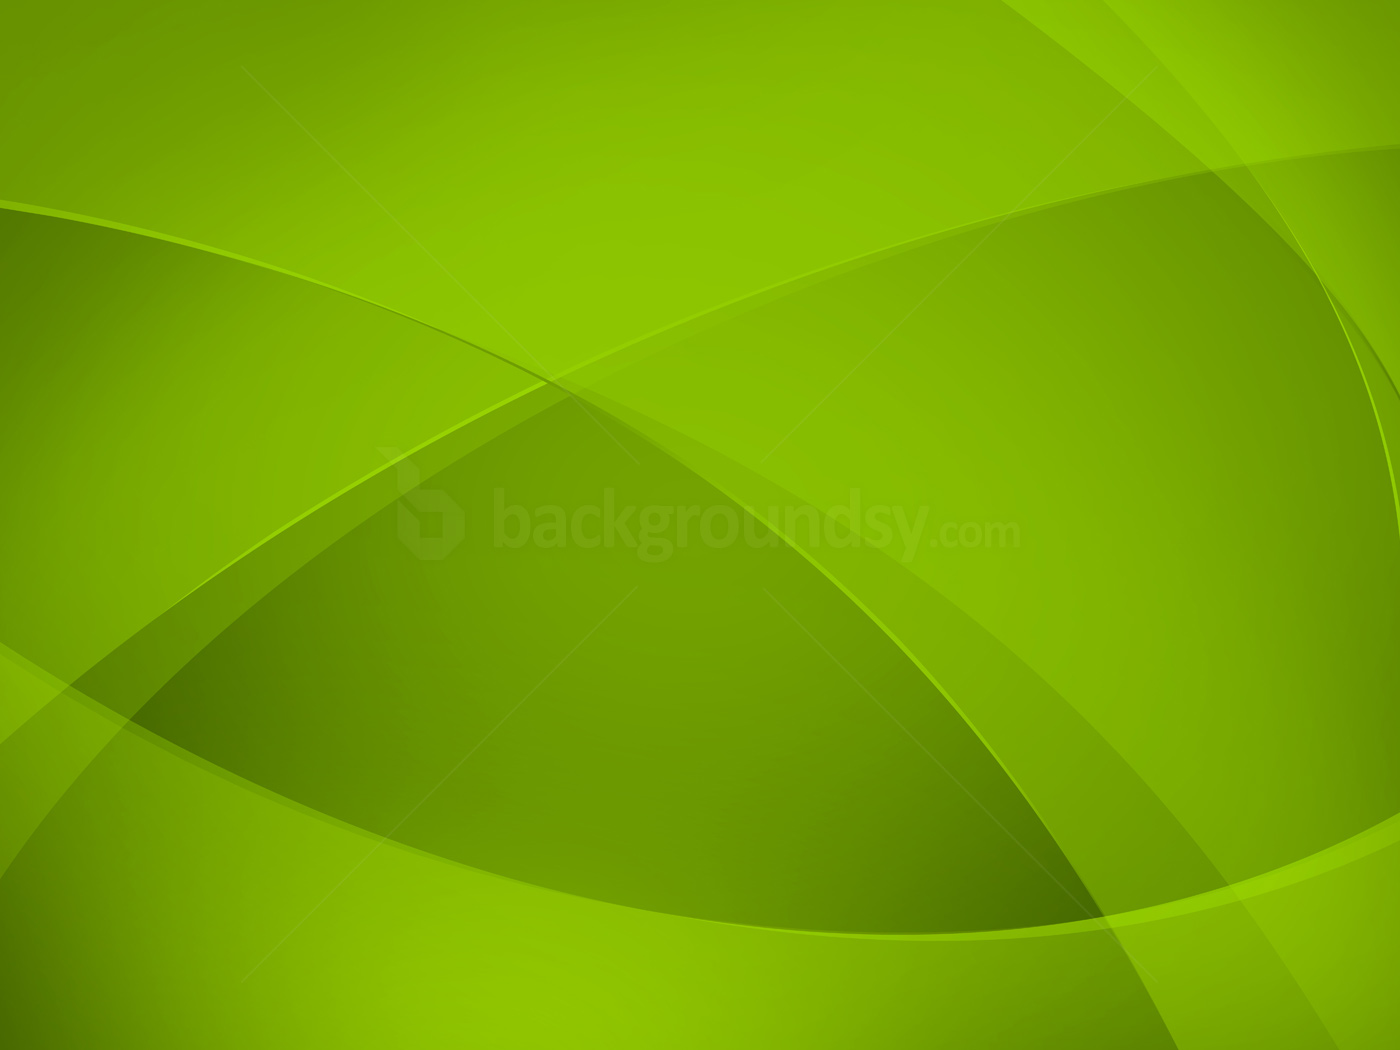 Wallpaper Abstrak 3d Green Background Backgroundsy Com